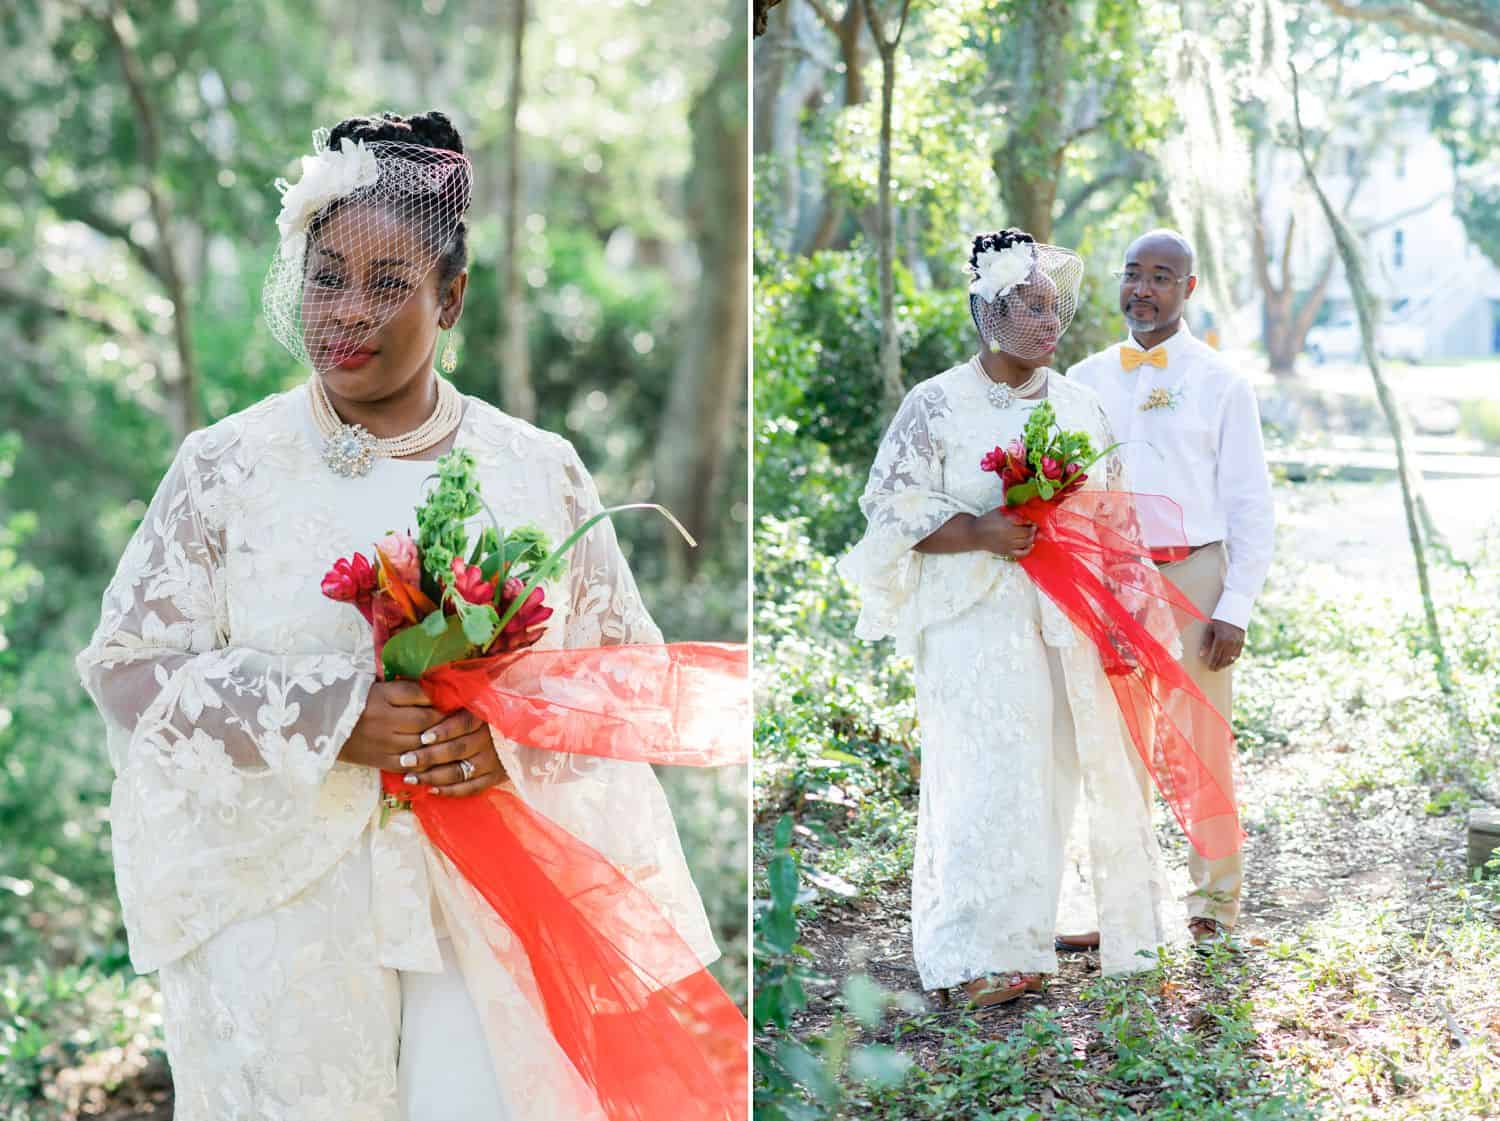 A beautiful Black bride carries a bouquet of red roses for portraits with her new husband